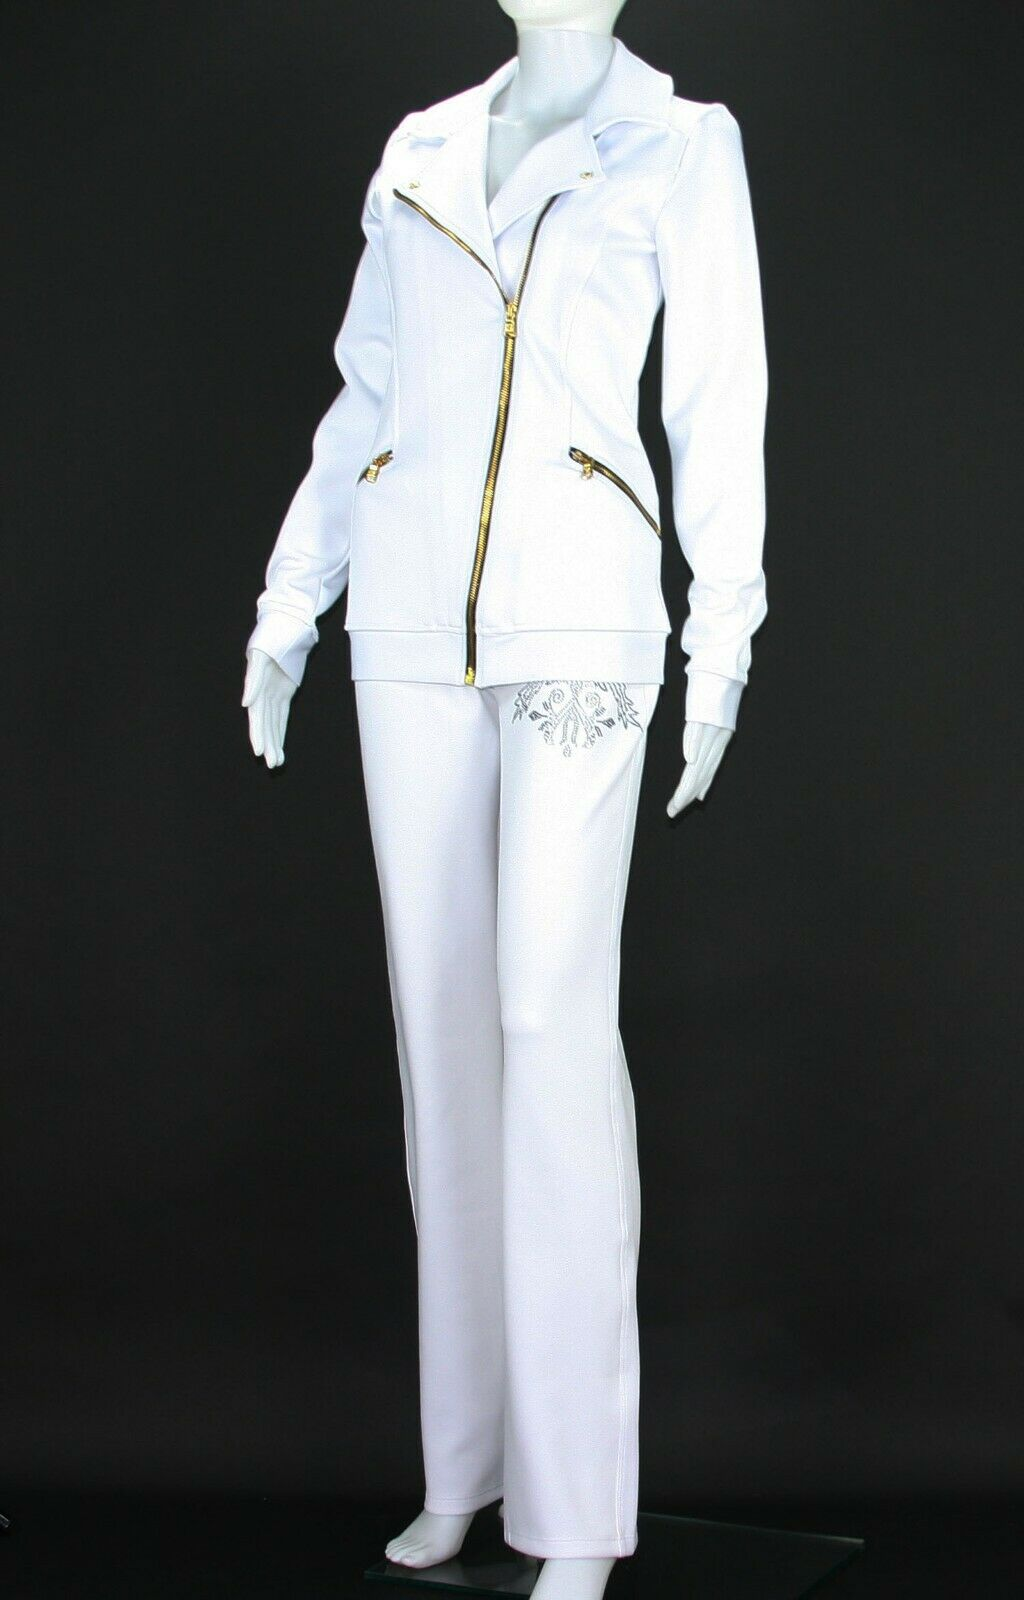 New Versace Women's White Gym Pant Suit with Crystal Embellishment 44 - US 8